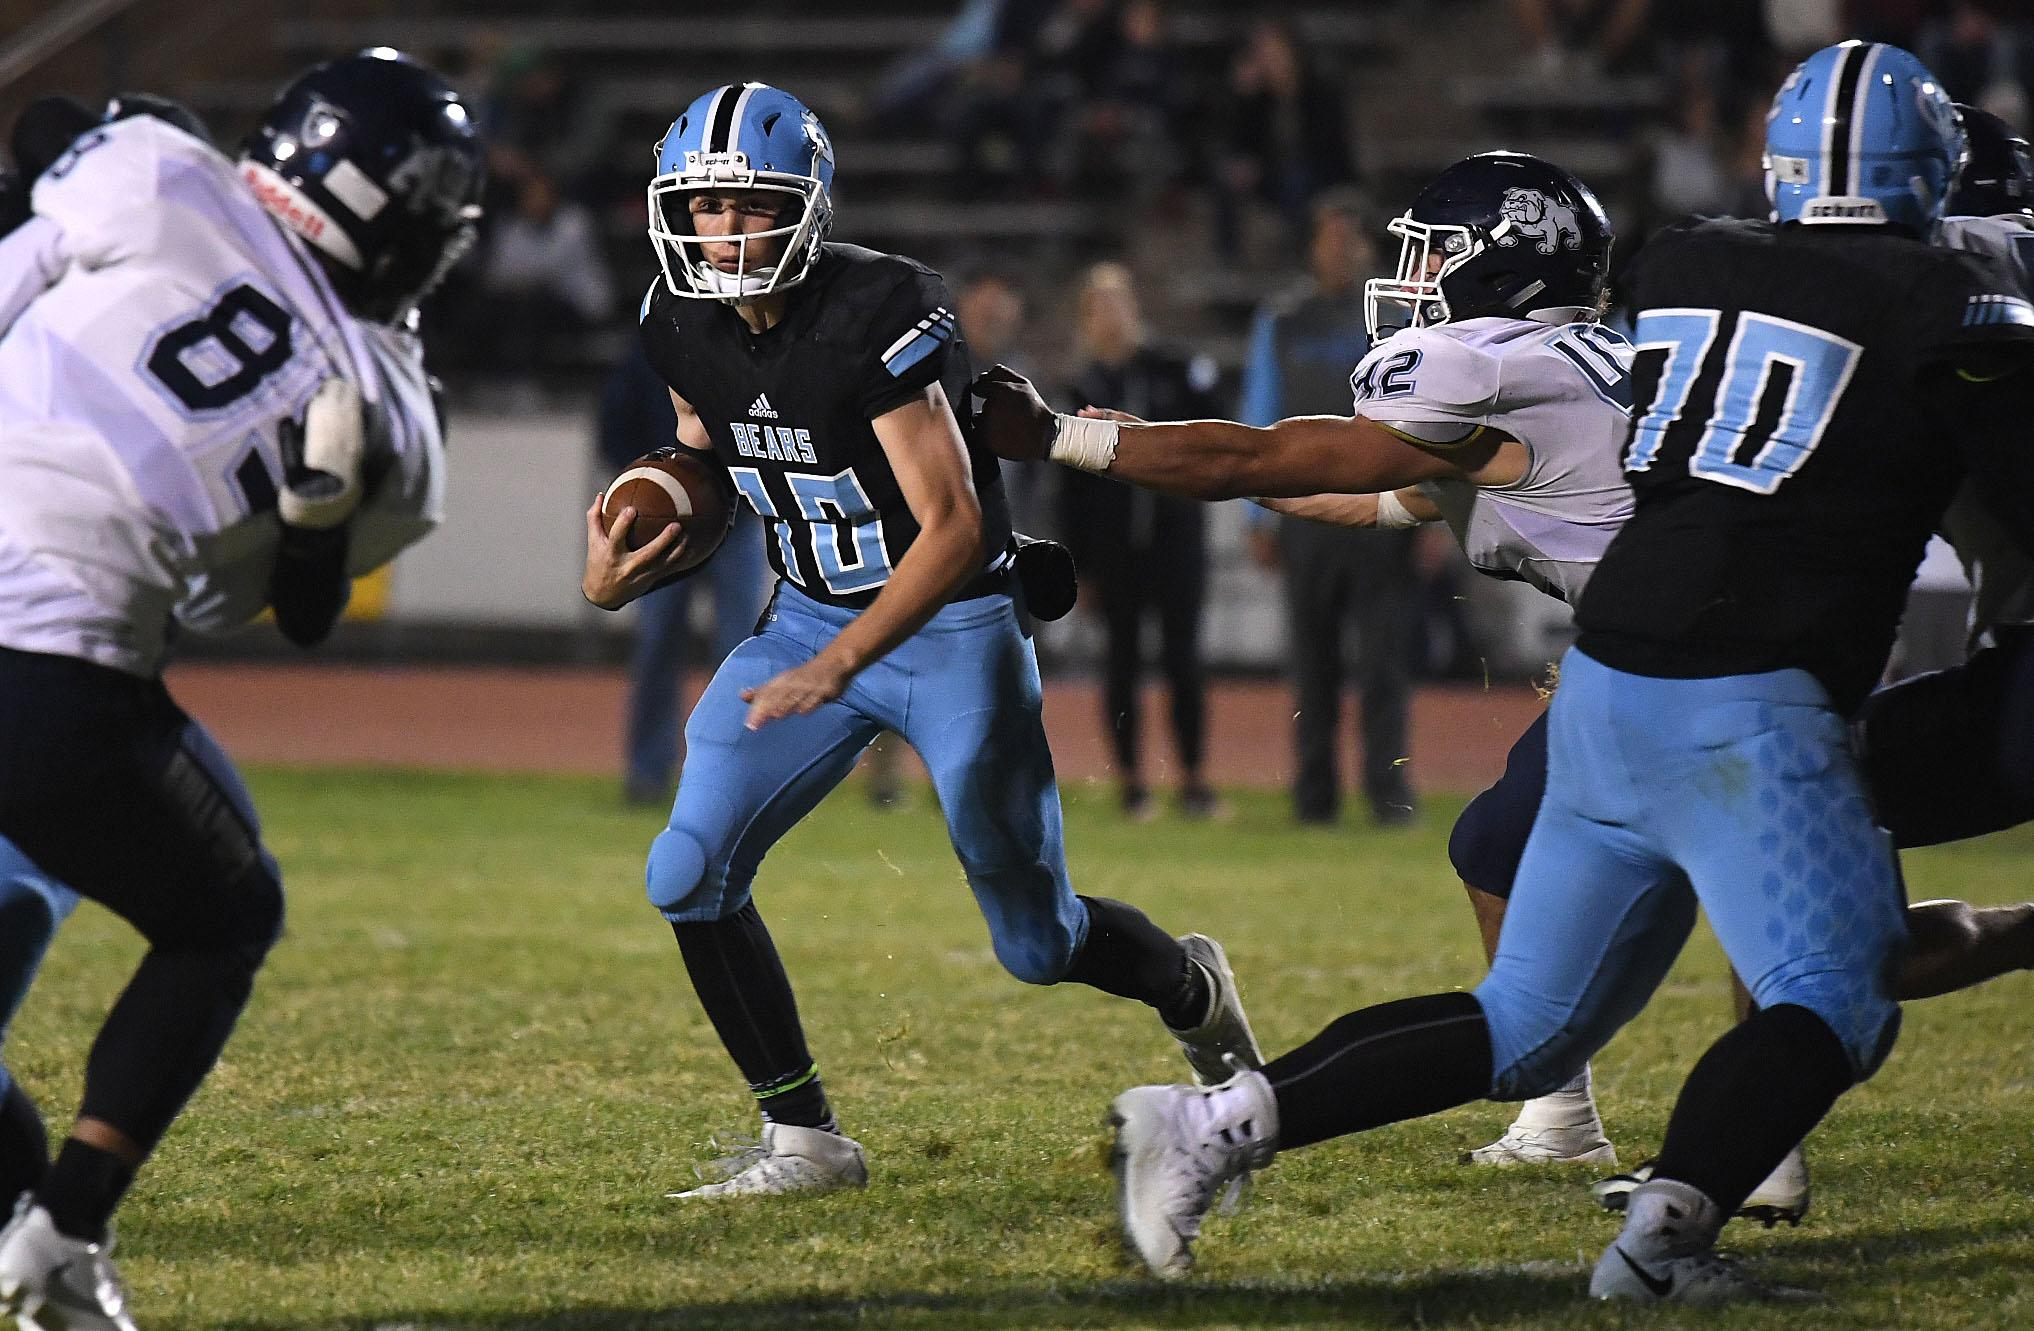 Central Valley quarterback Grant Hannan (10) scrambles during the second  half of a GSL